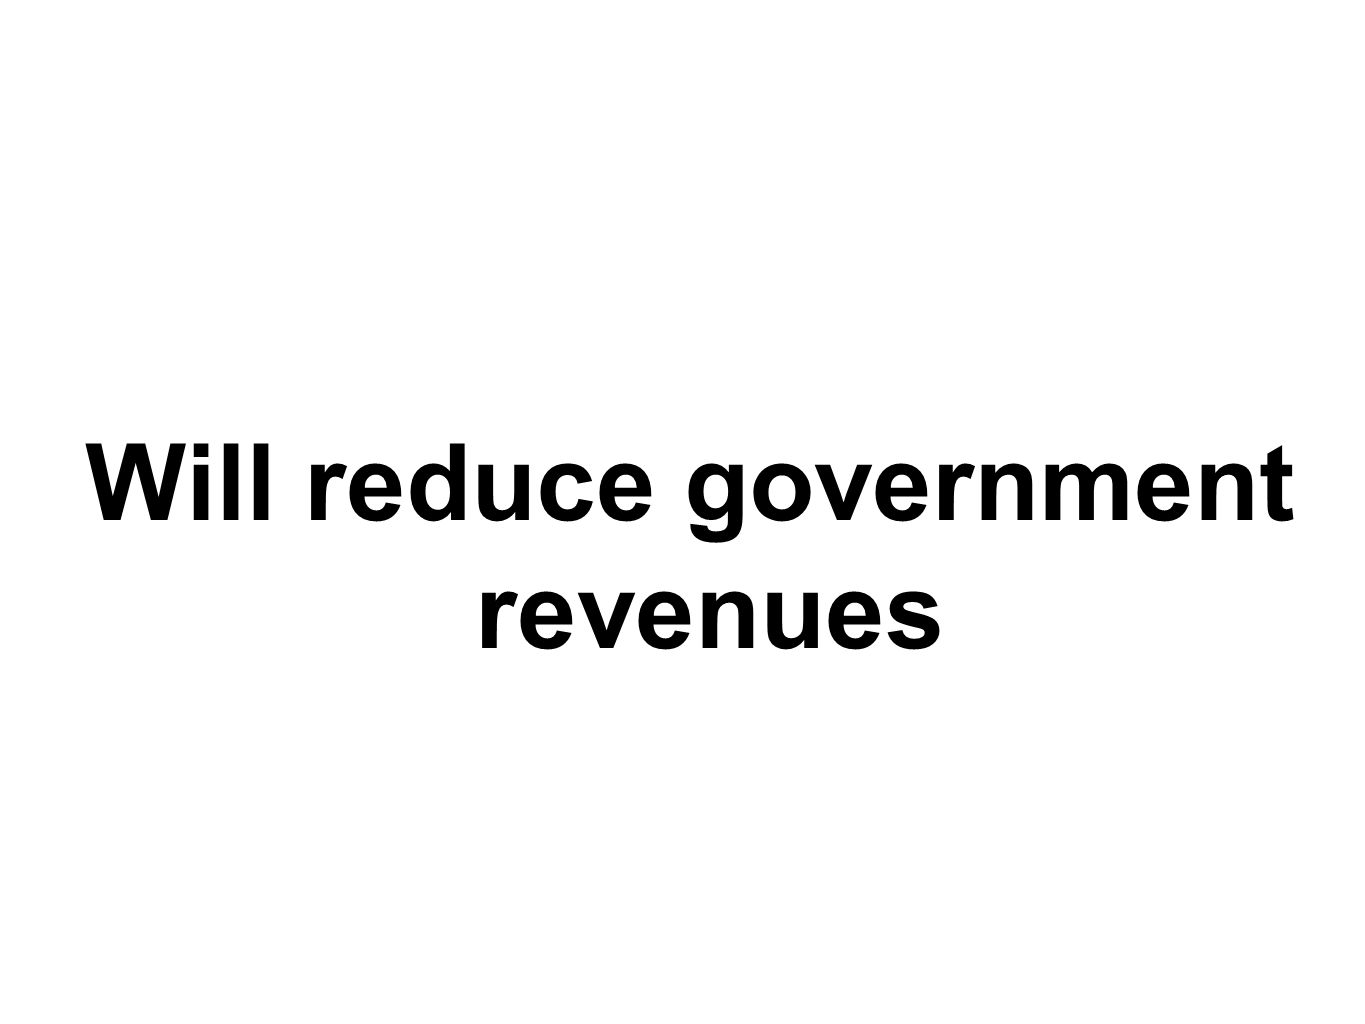 Will reduce government revenues